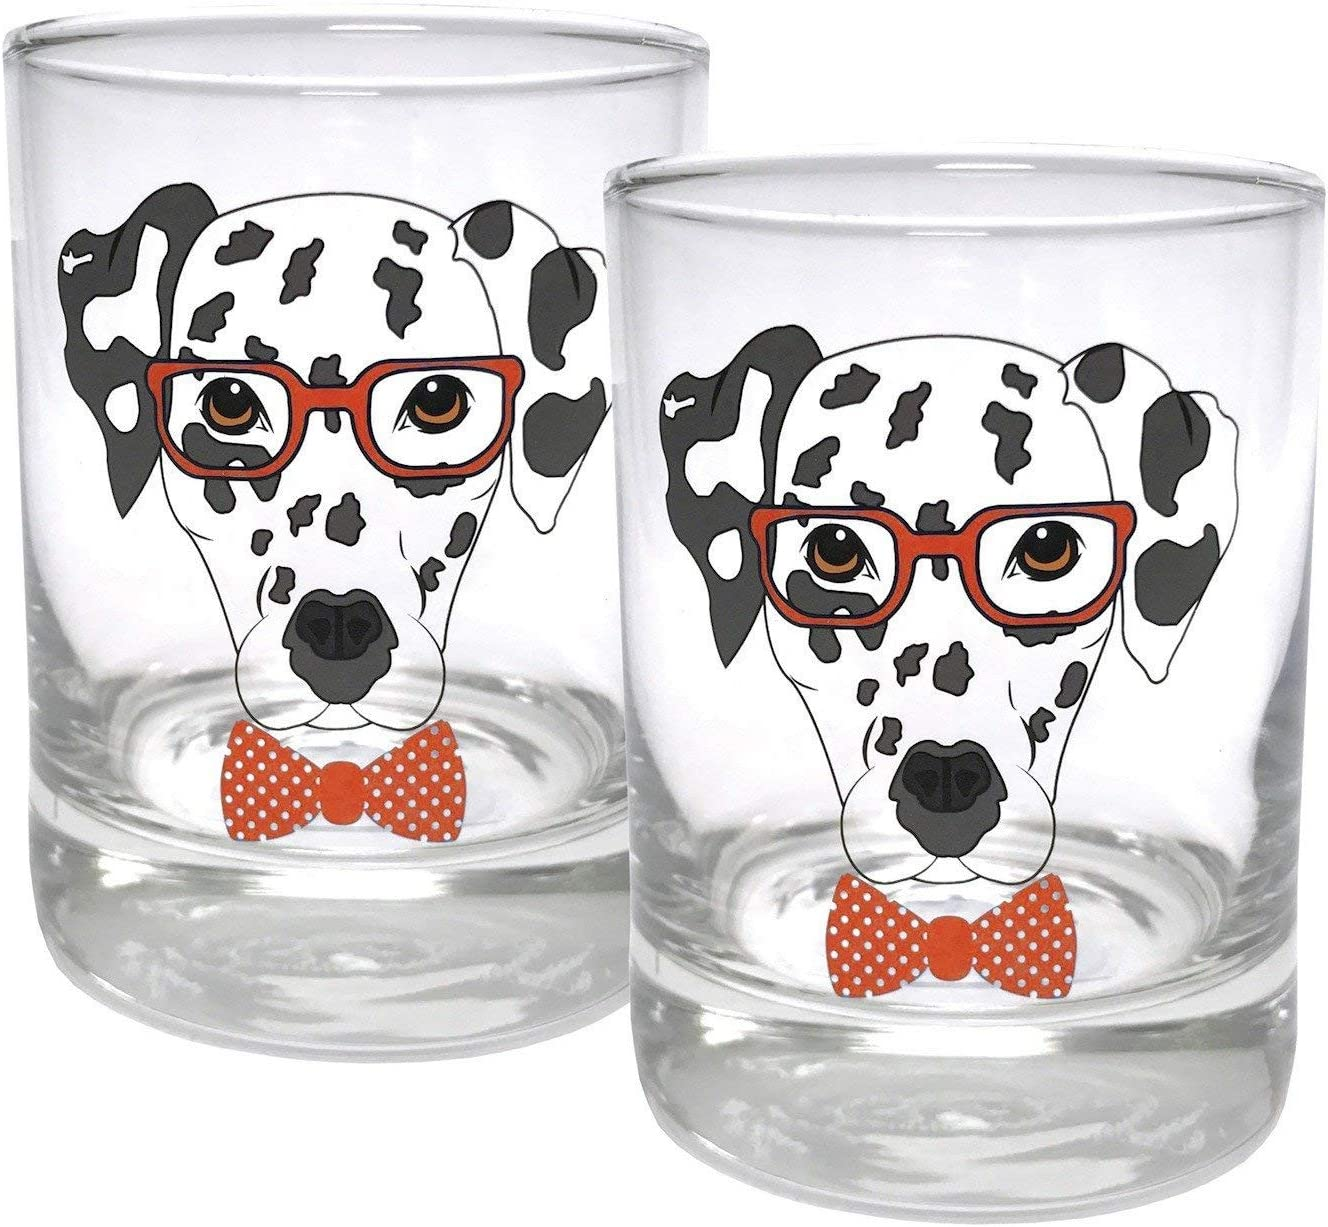 Circleware Dalmatian Dogs Double Old Fashioned Whiskey, Set of 2 Kitchen Drinking Glasses Glassware for Water, Juice, Beer and Best Bar Barrel Liquor Dining Decor Beverage Gifts, 11.25 oz, Red